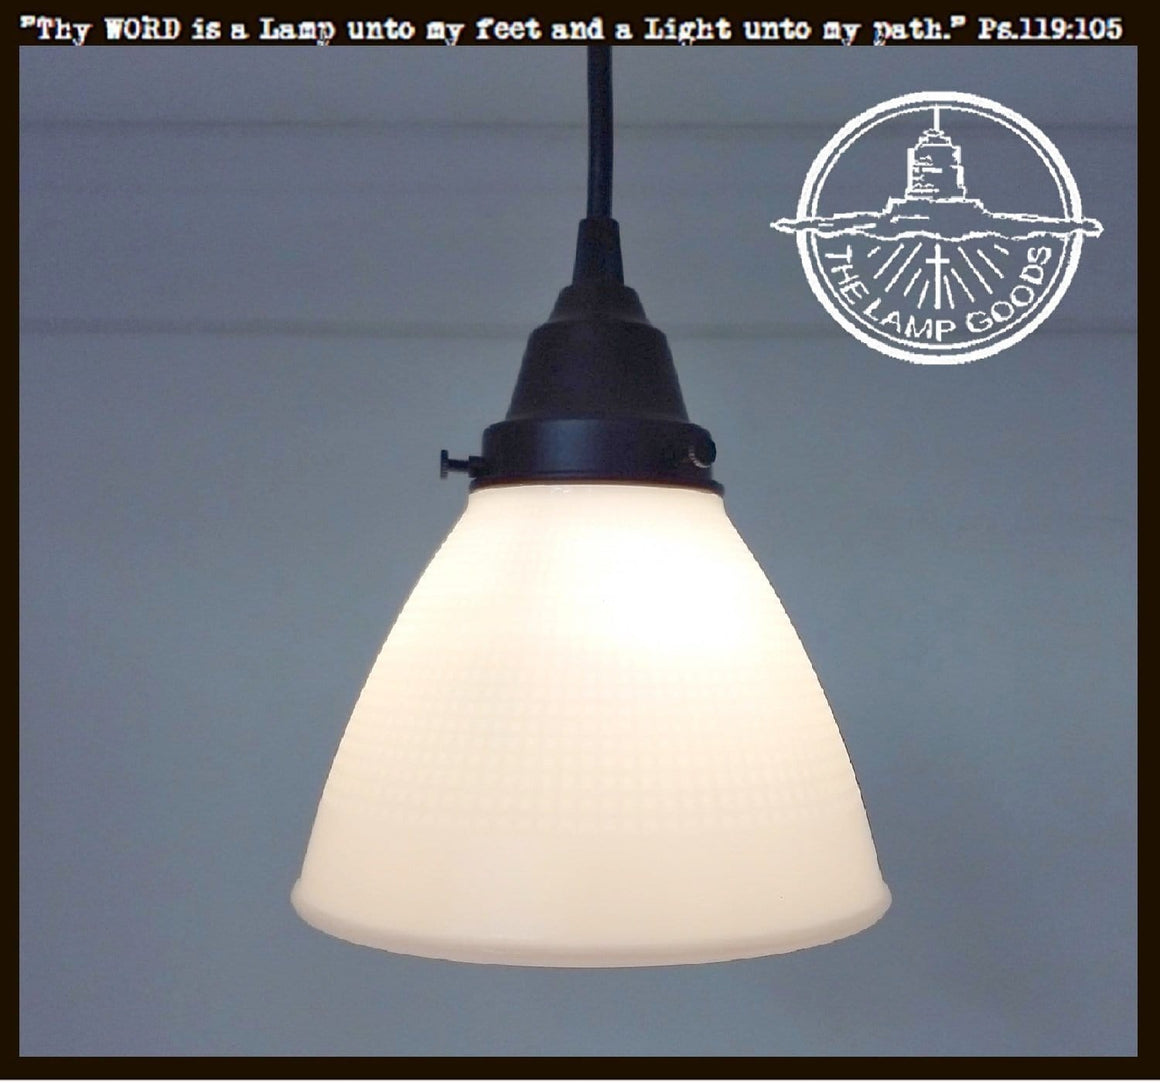 Charming Pendant Light of Vintage Milk Glass - The Lamp Goods